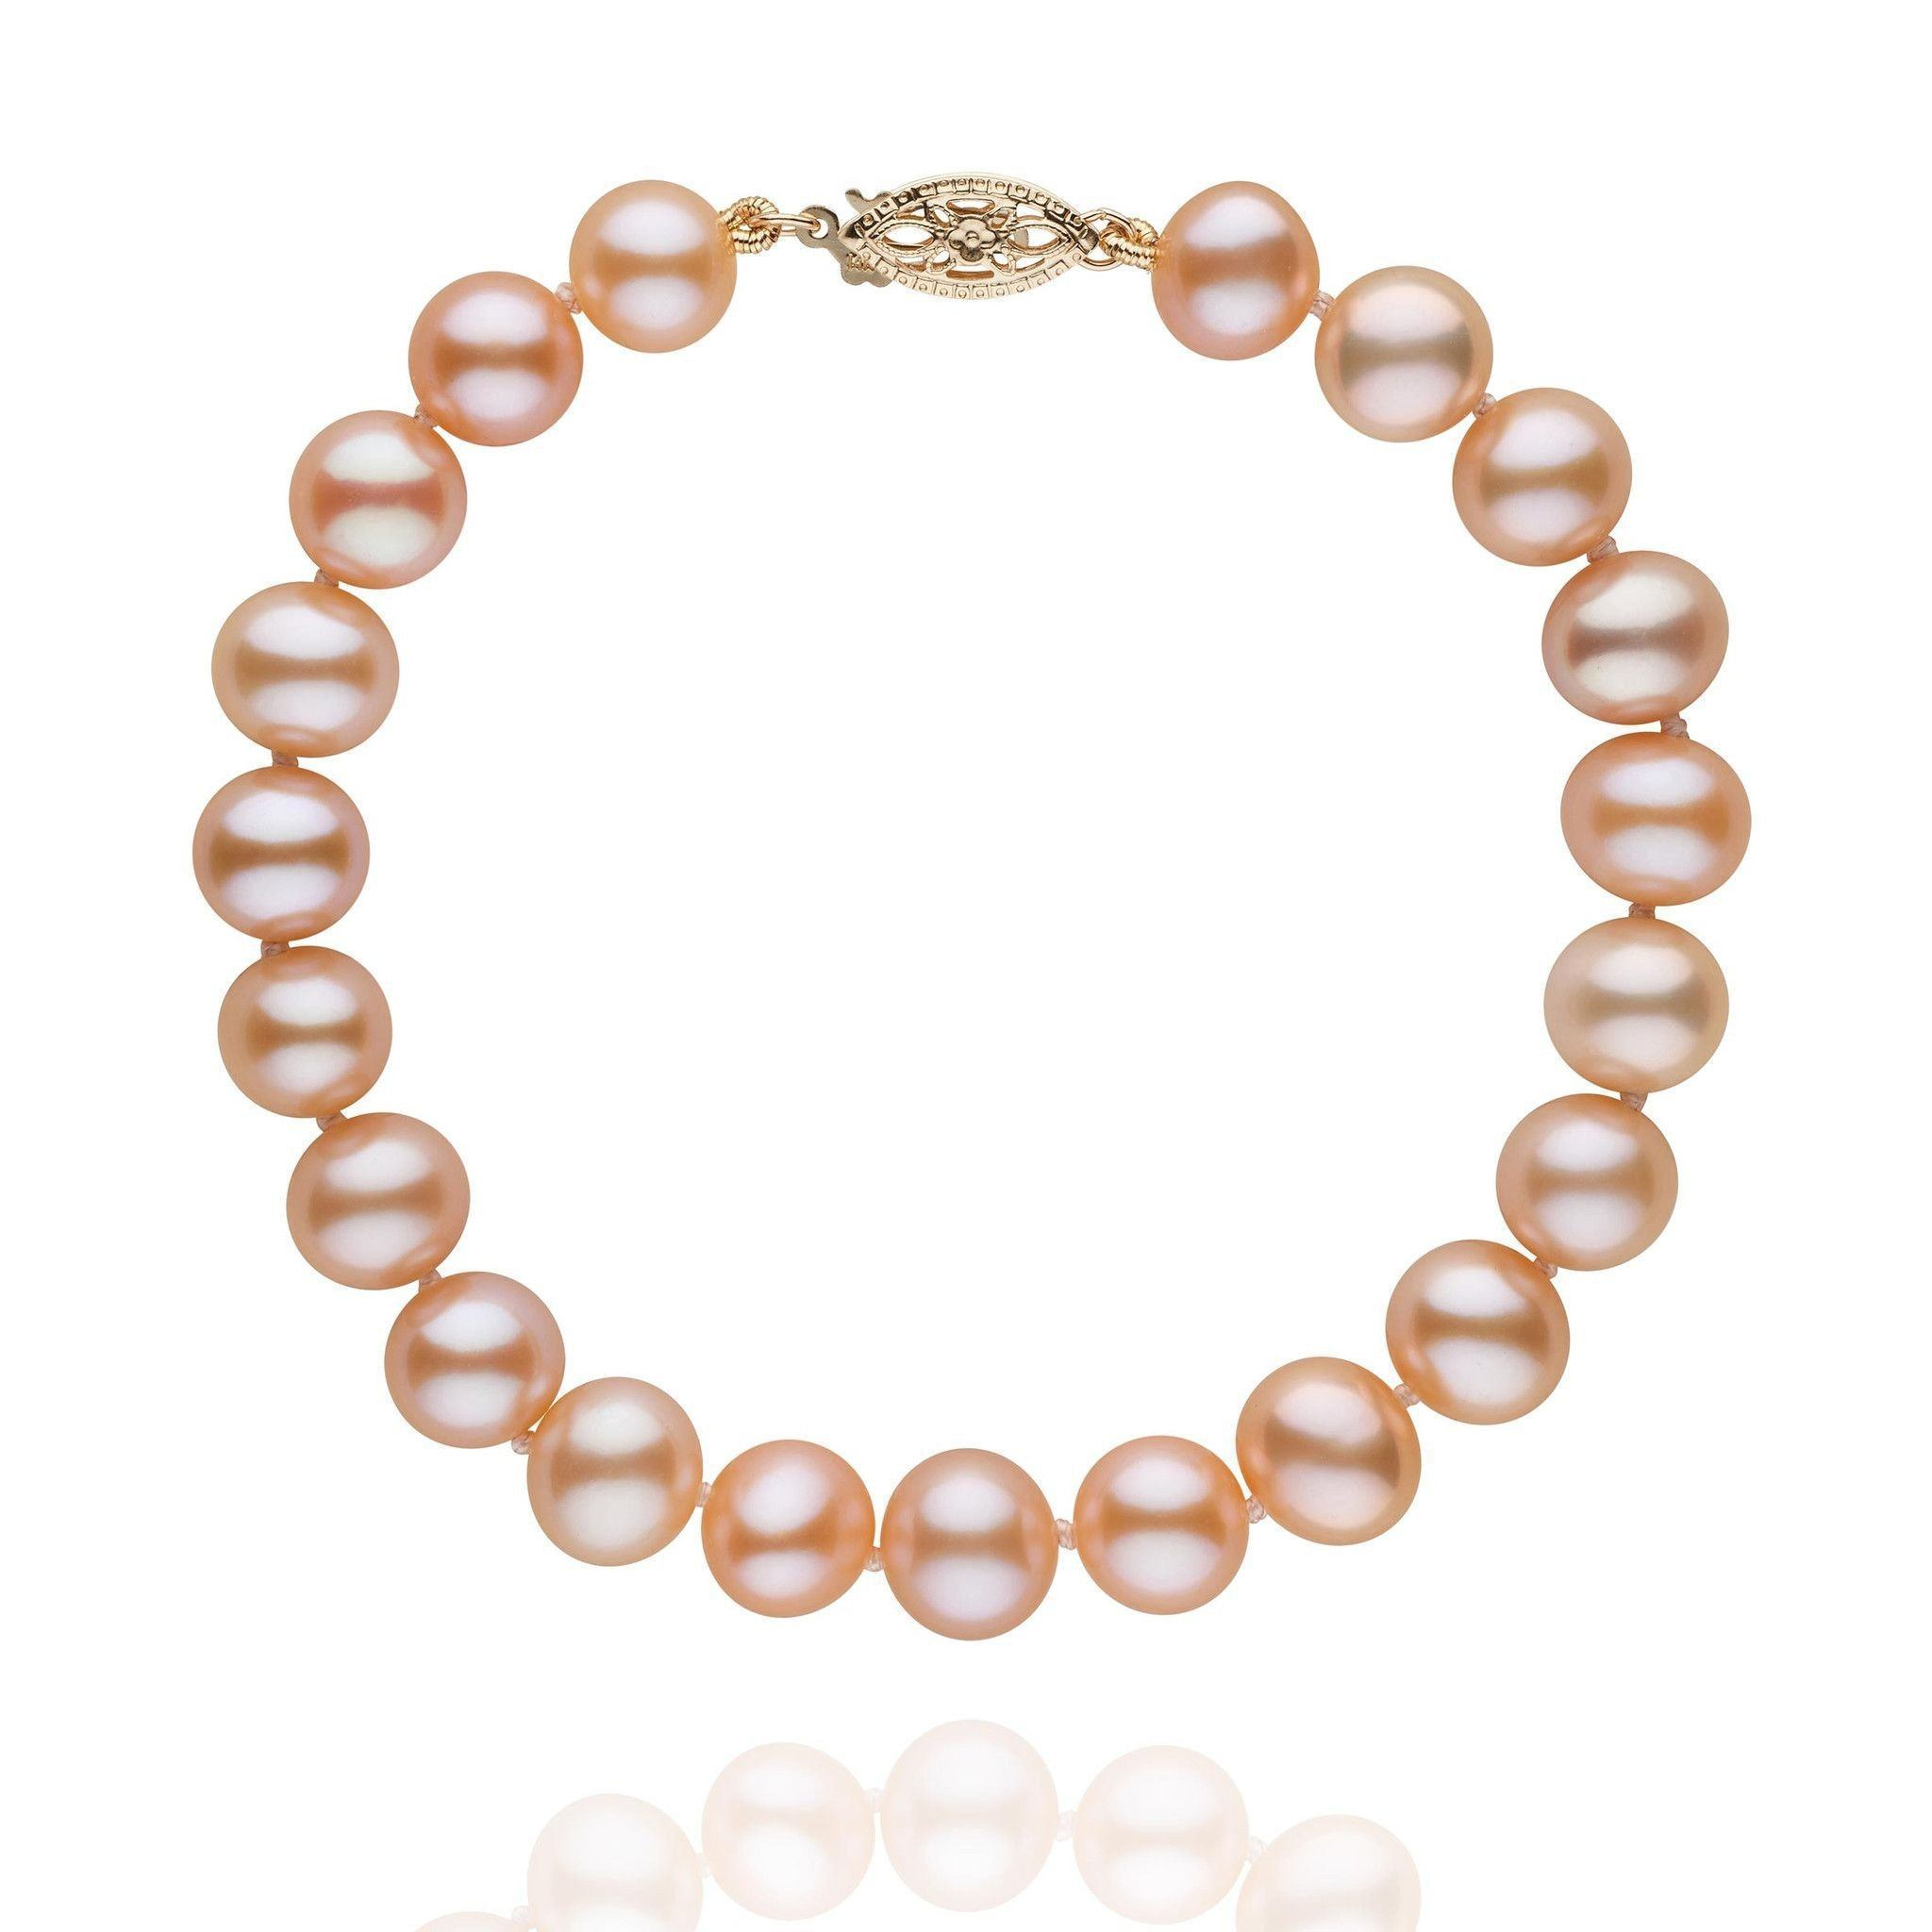 7.5-8.0 mm Pink to Peach Freshwater AA+ Pearl Bracelet